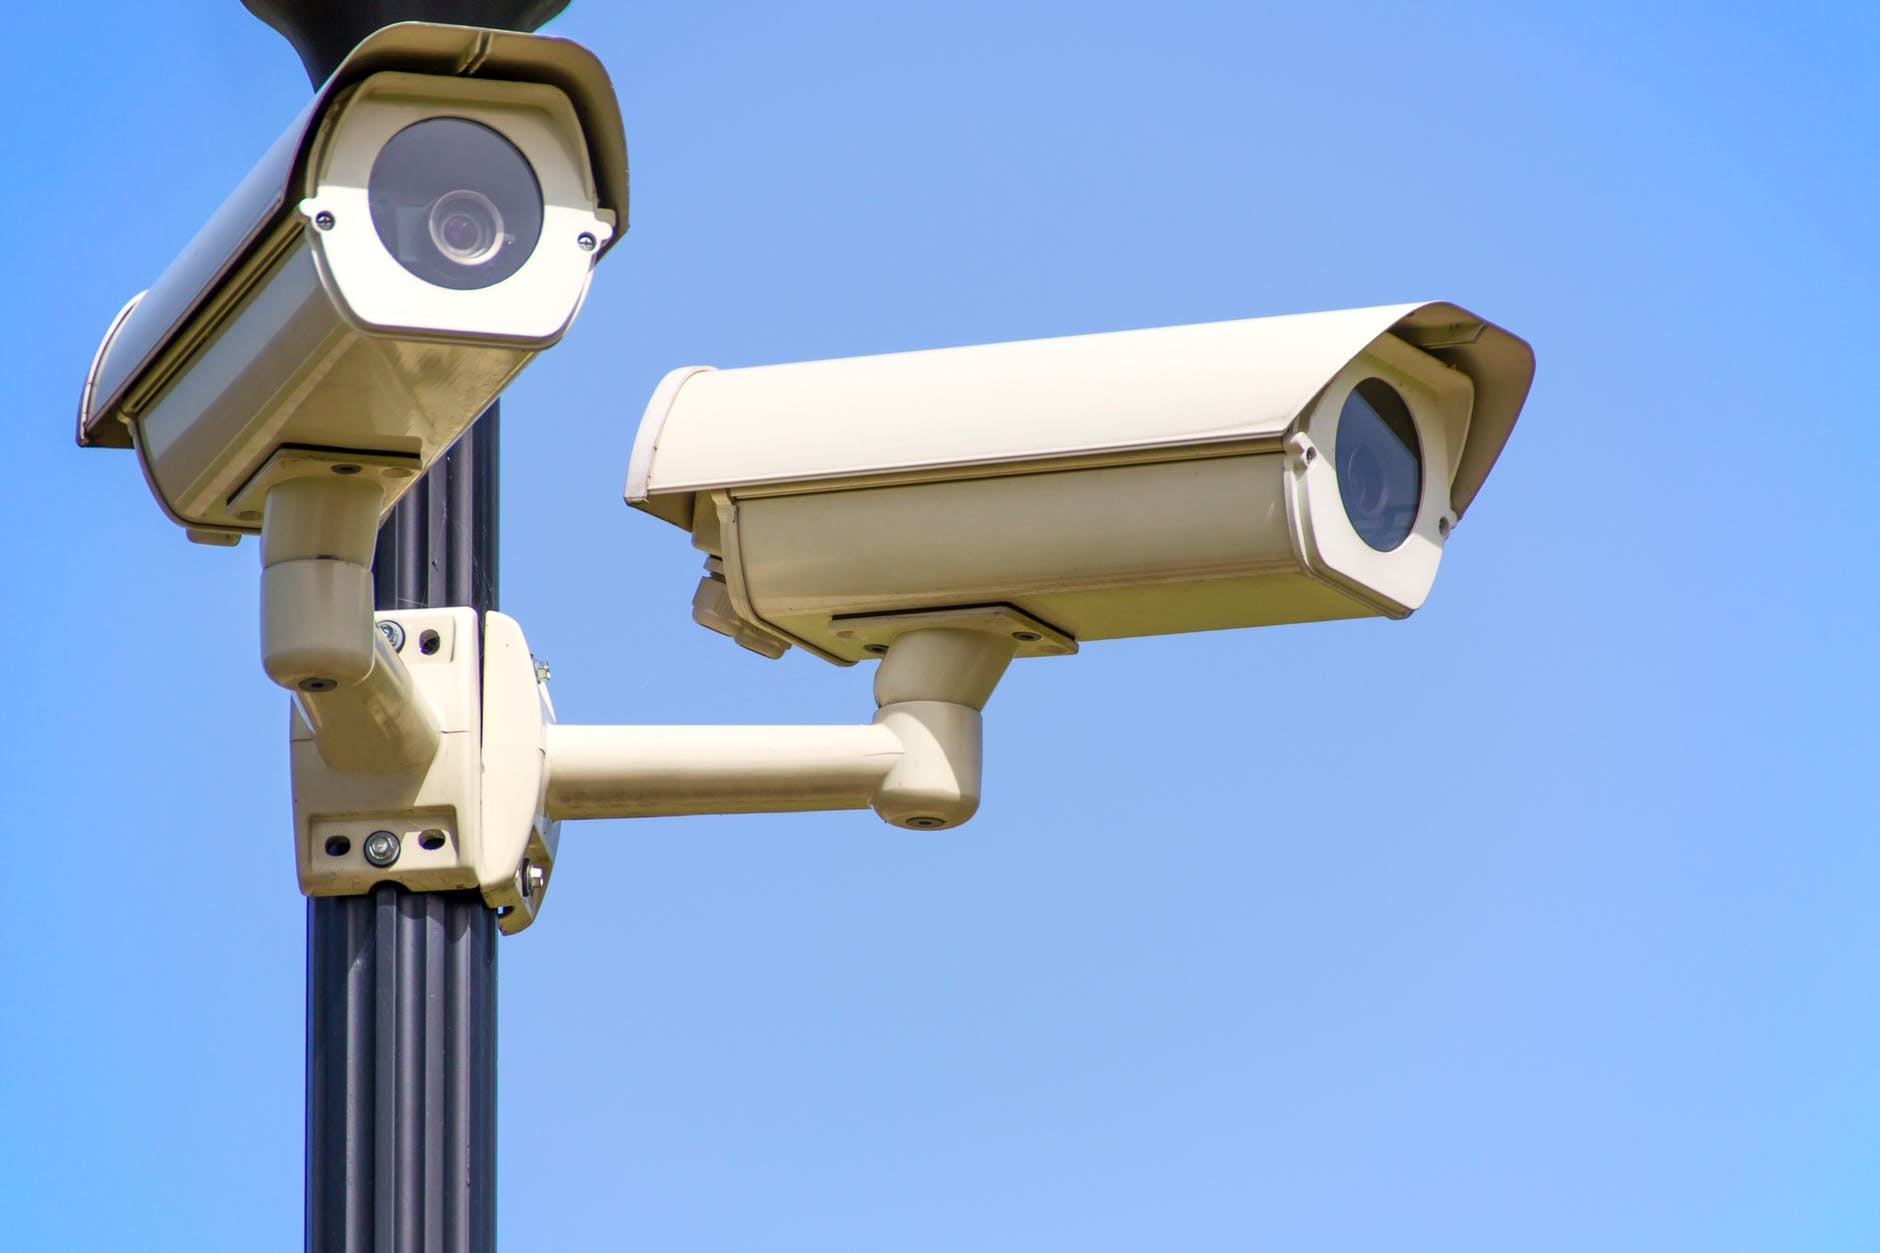 Video Surveillance Industry